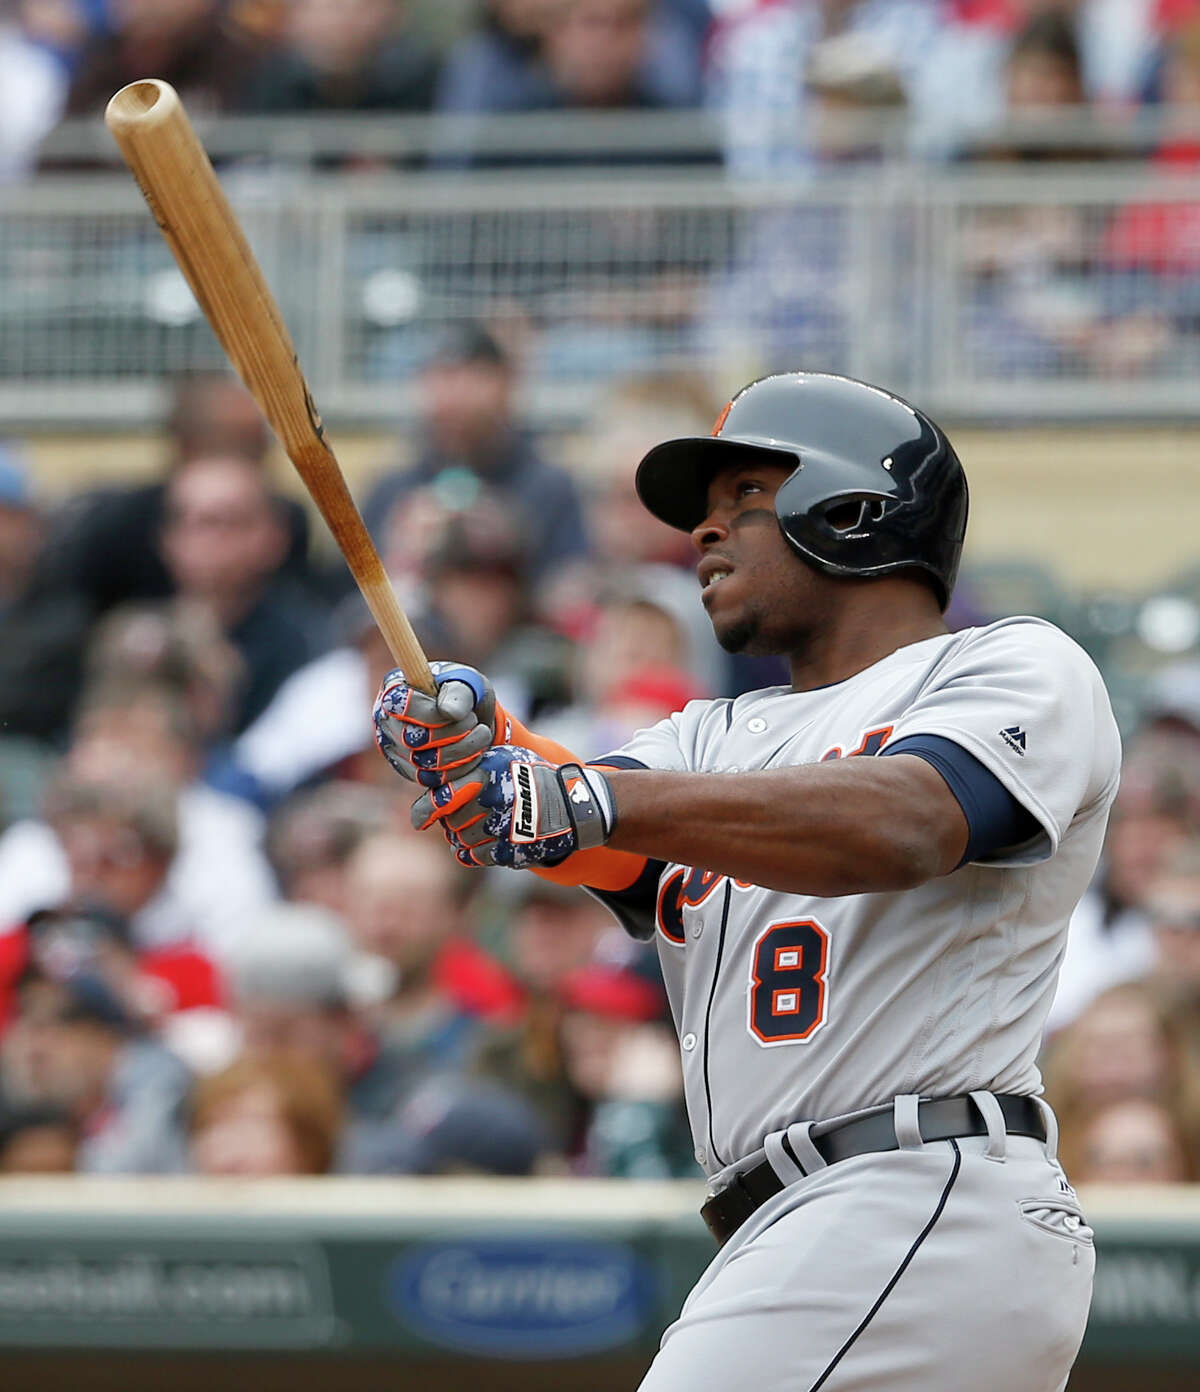 Detroit Tigers' Justin Upton (8) watches the flight of his three-run home run off Minnesota Twins starting pitcher Tyler Duffey during the first inning of a baseball game in Minneapolis, Saturday, April 30, 2016. (AP Photo/Ann Heisenfelt) ORG XMIT: MNAH102